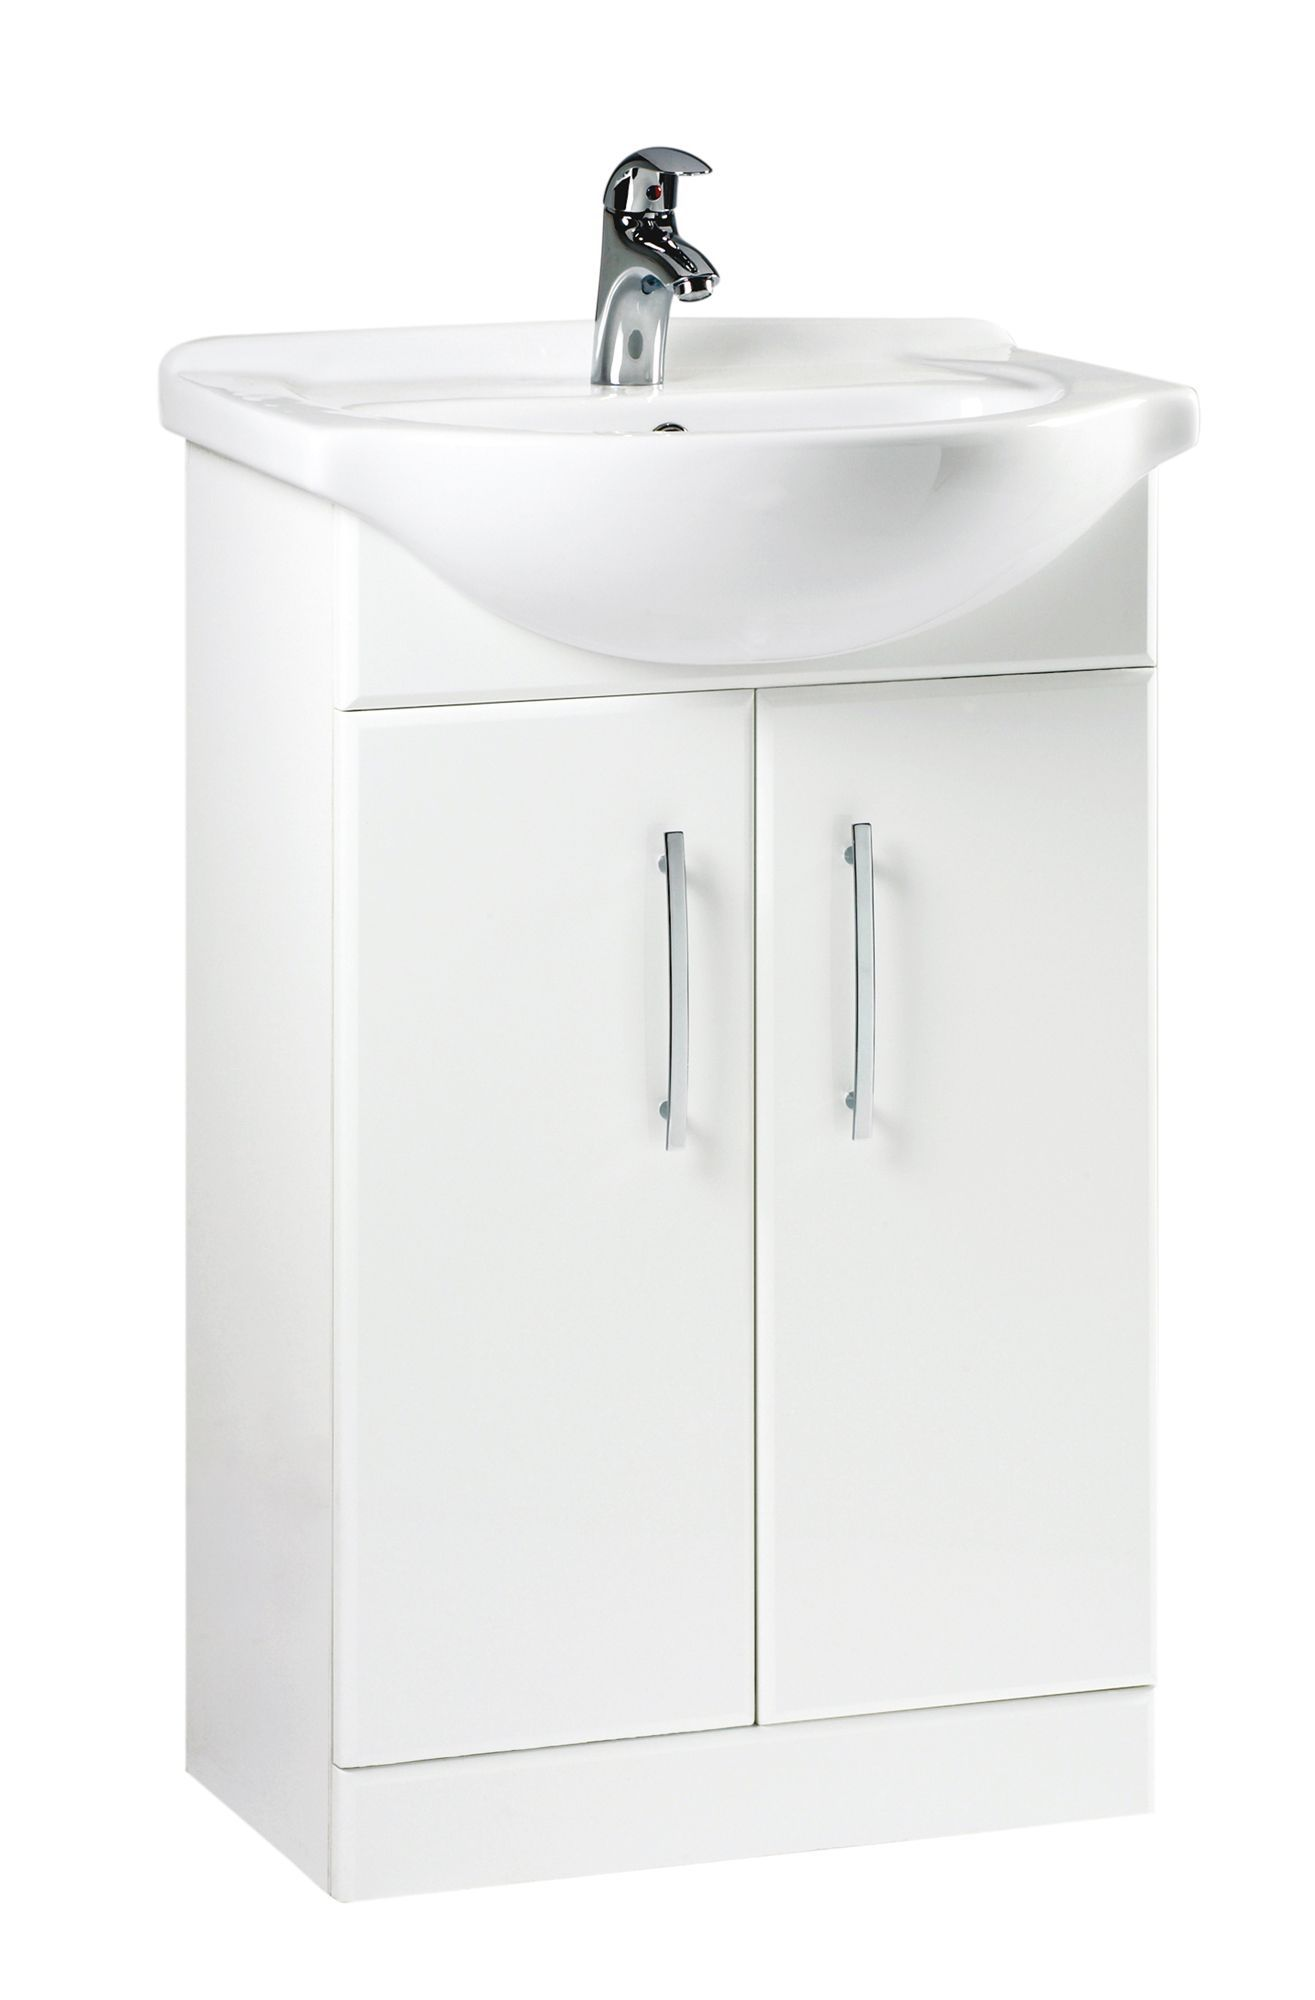 Small Bathrooms B&Q b&q white vanity unit & basin | departments ...